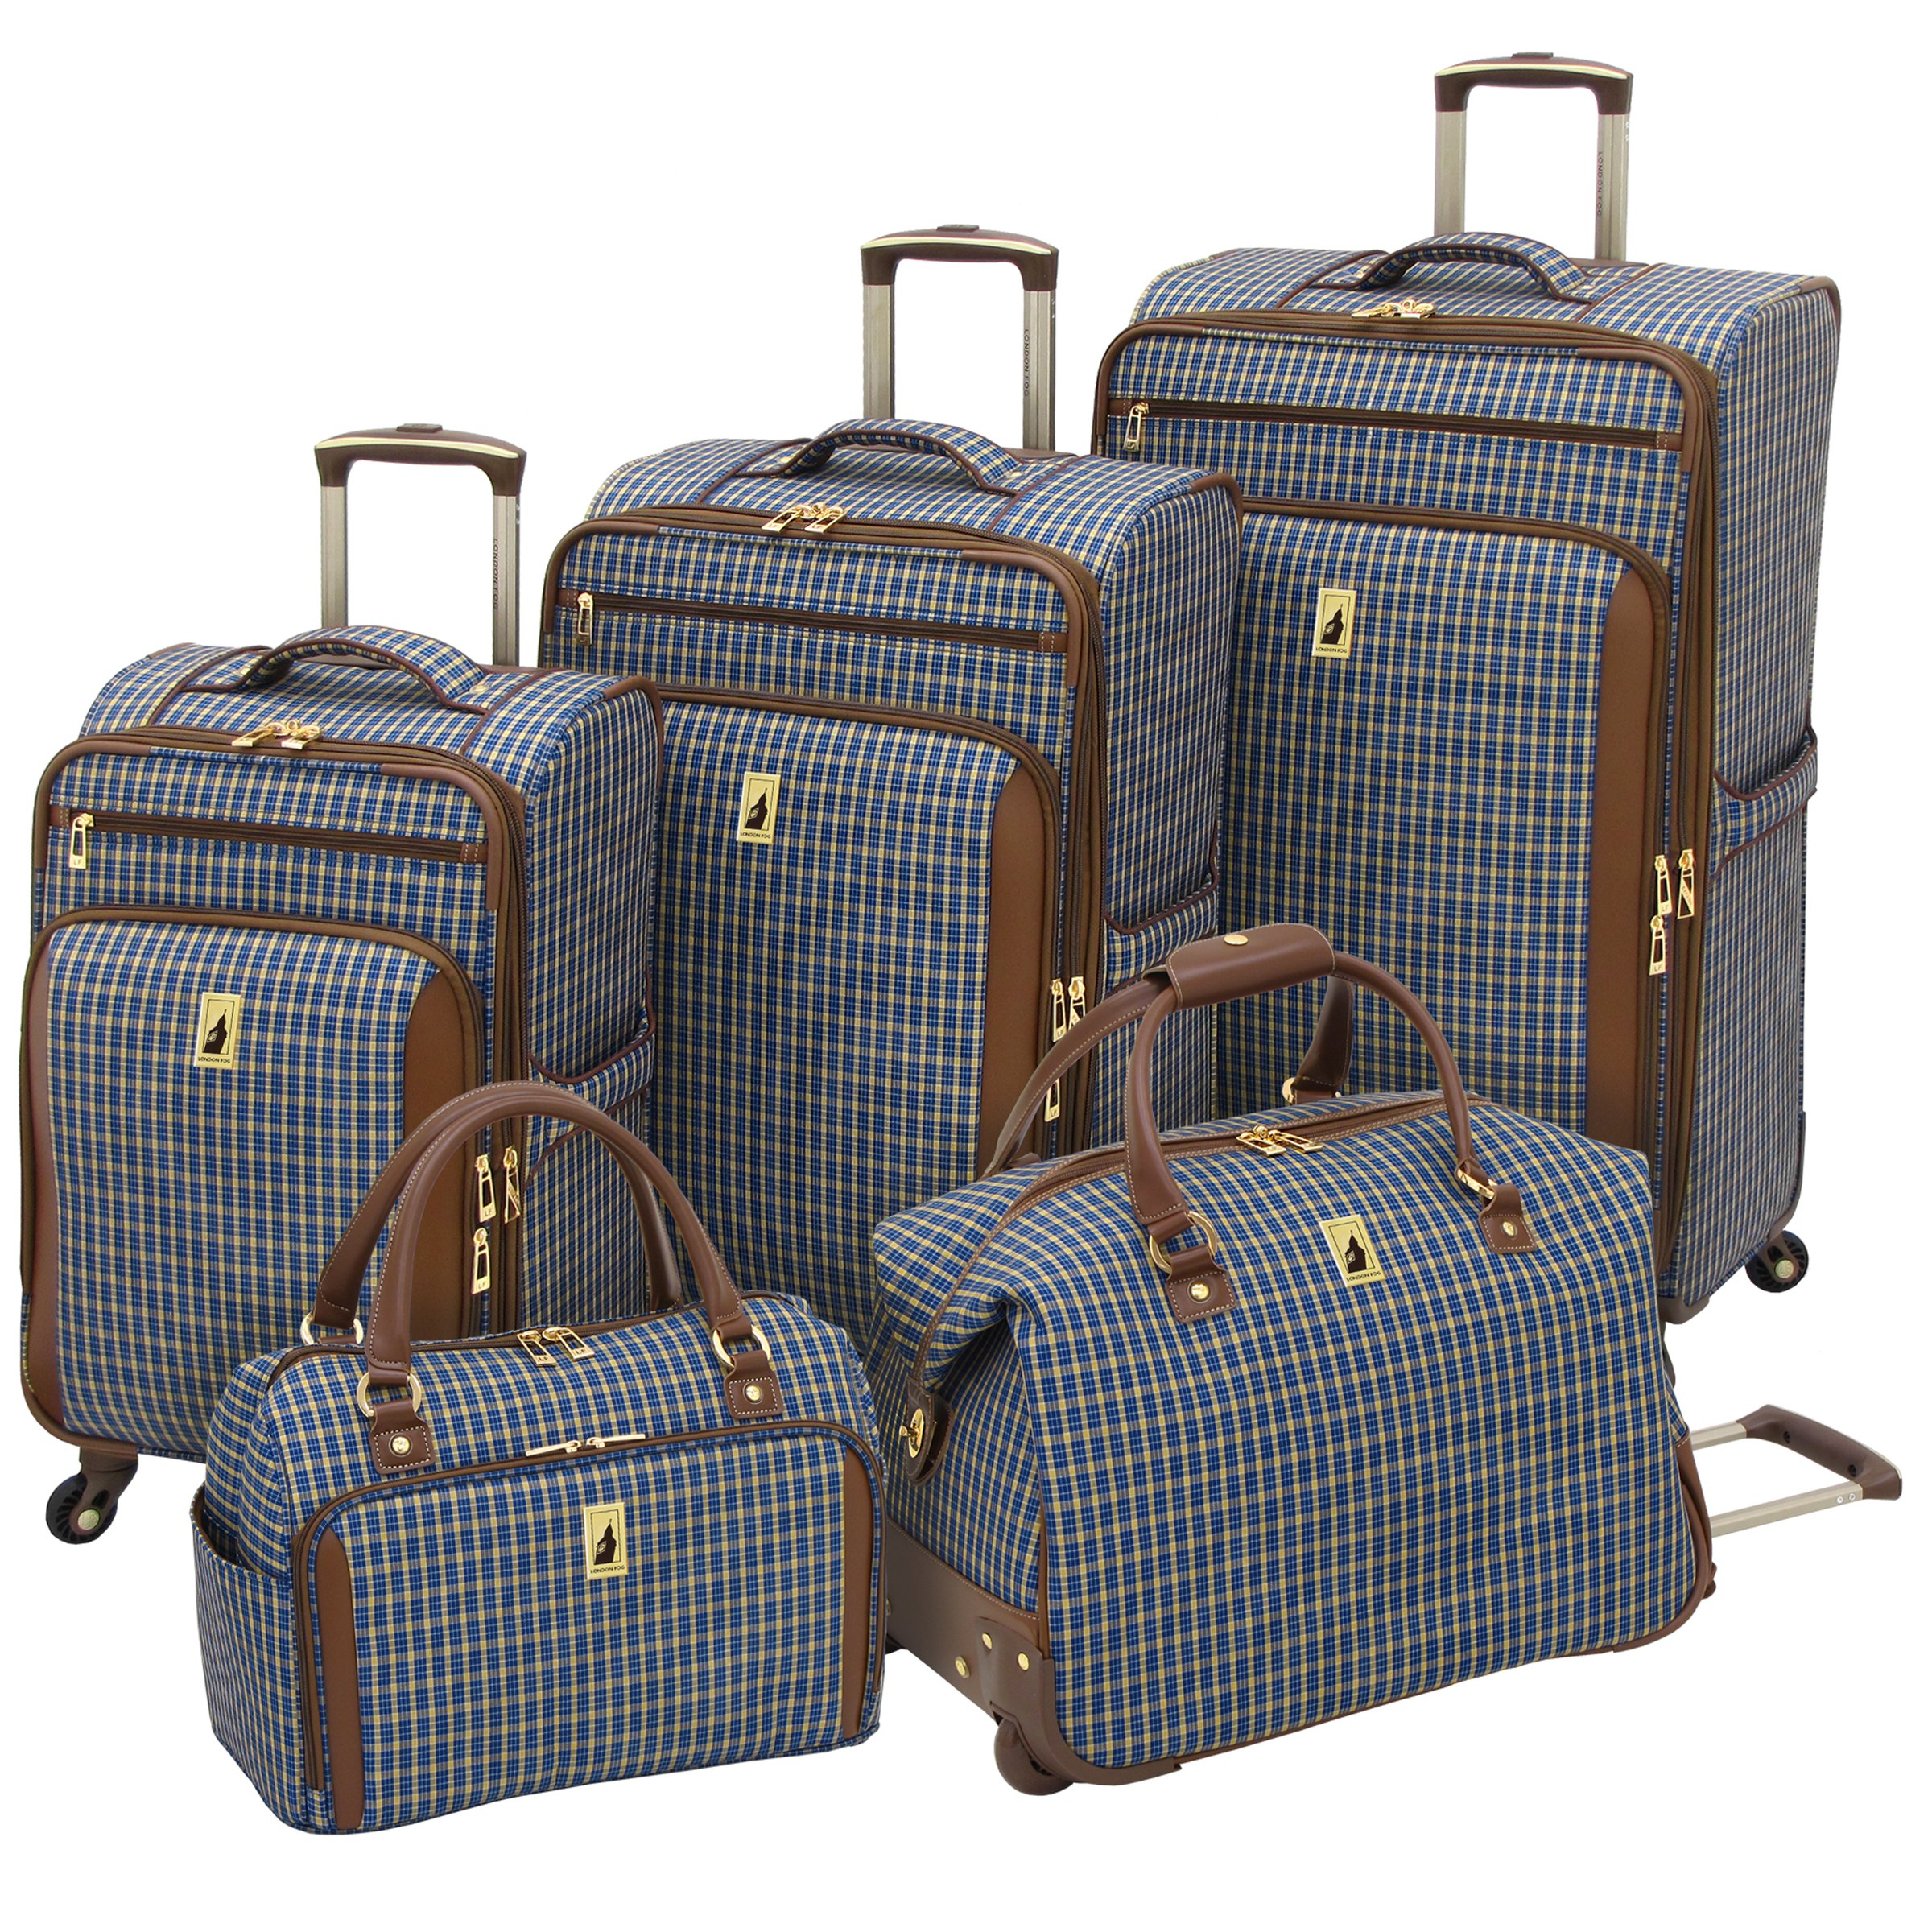 London Fog Kensington 25 Inch Expandable Spinner, Blue Tan Plaid, One Size by London Fog (Image #2)